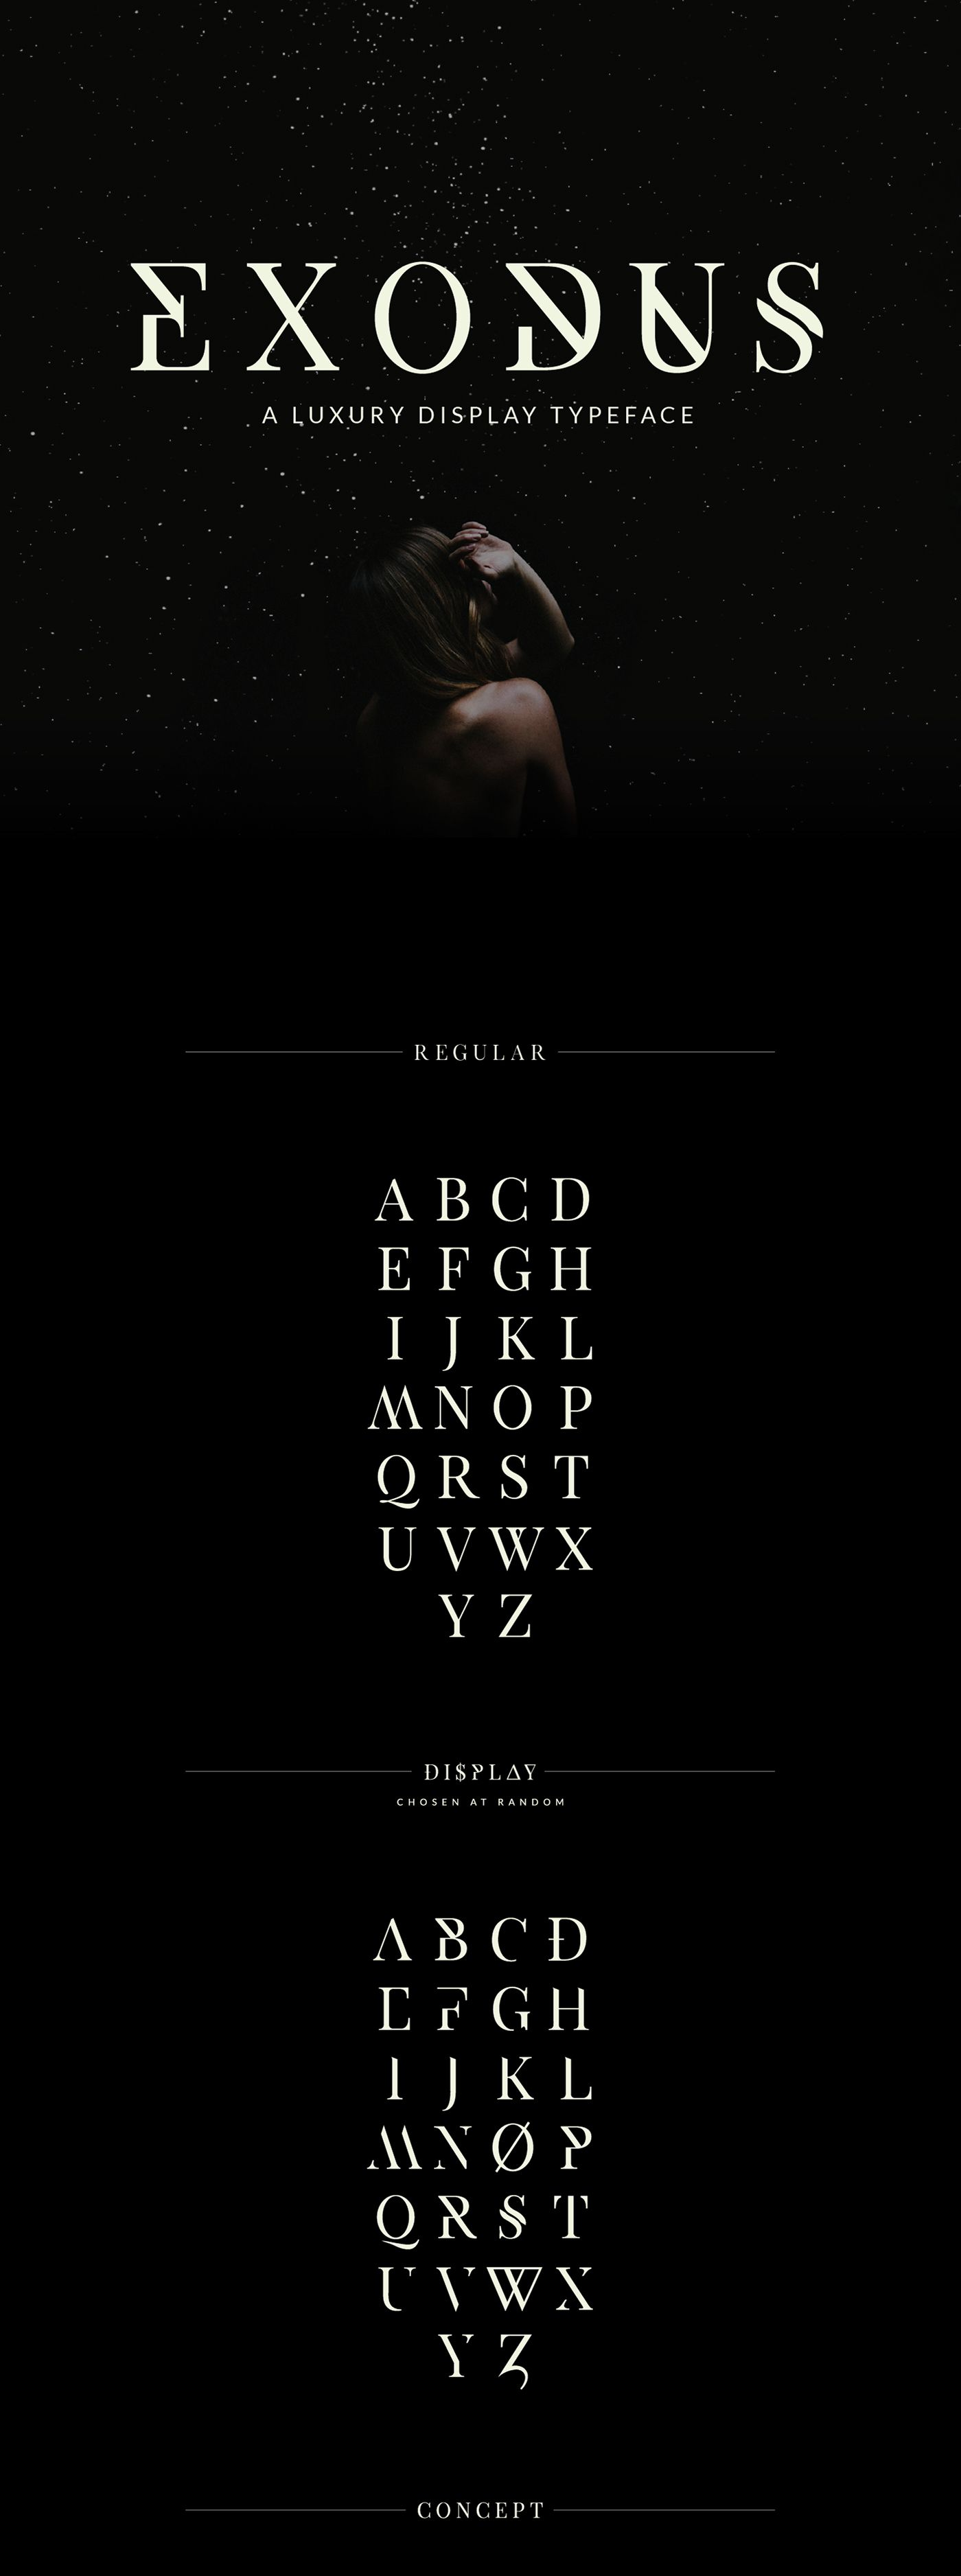 Exodus is a display serif typeface with luxurious lines and a smorgasbord of unique alternative characters. Exodus was designed to create stellar unique character sets for logos and headings while giving full control to the designer.